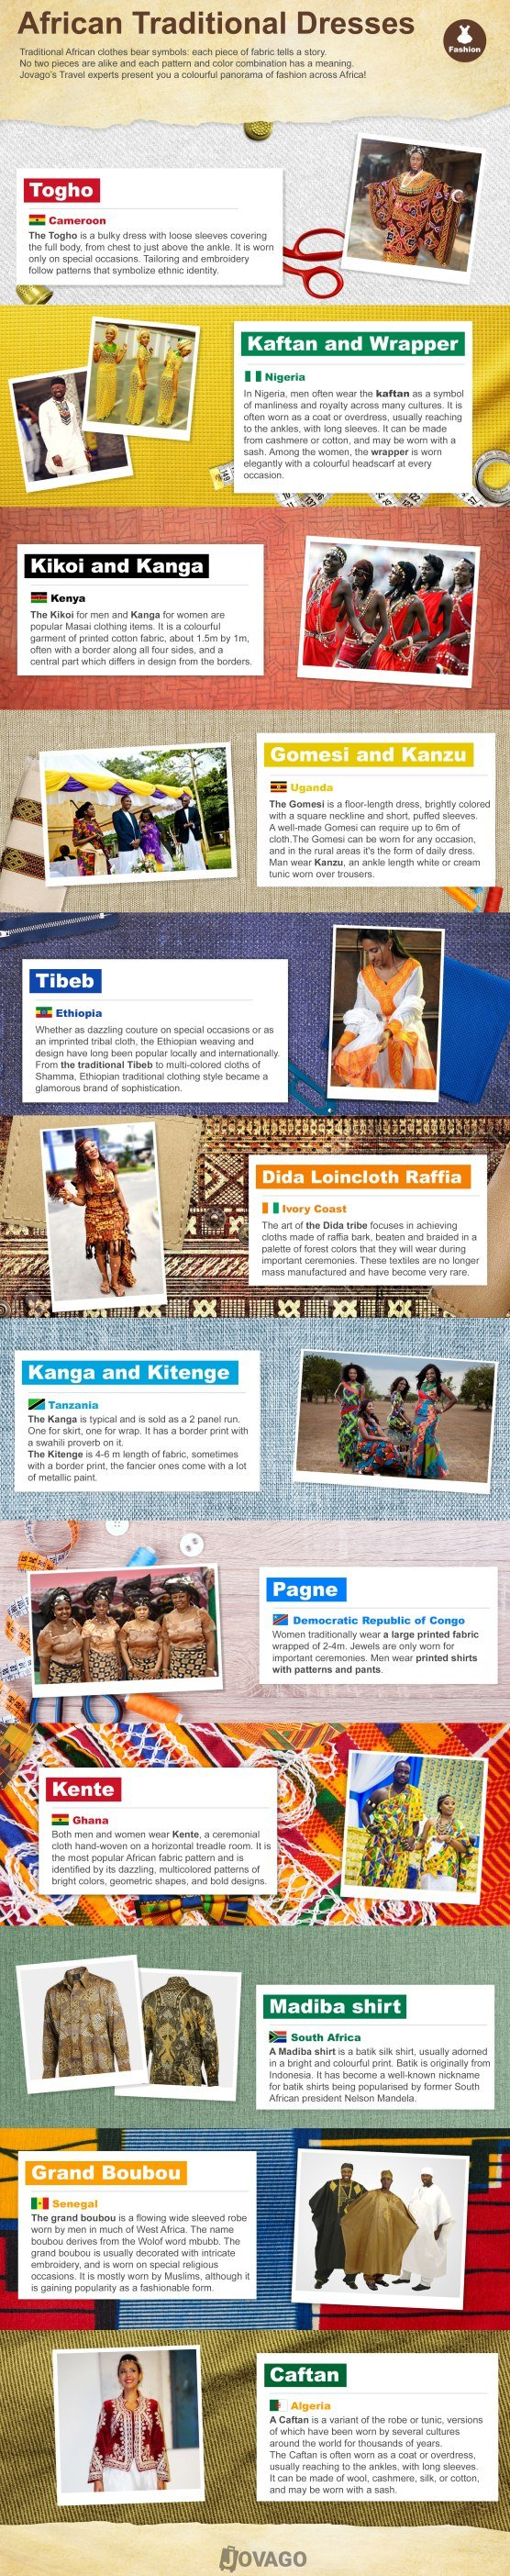 Traditional African Dresses infographic